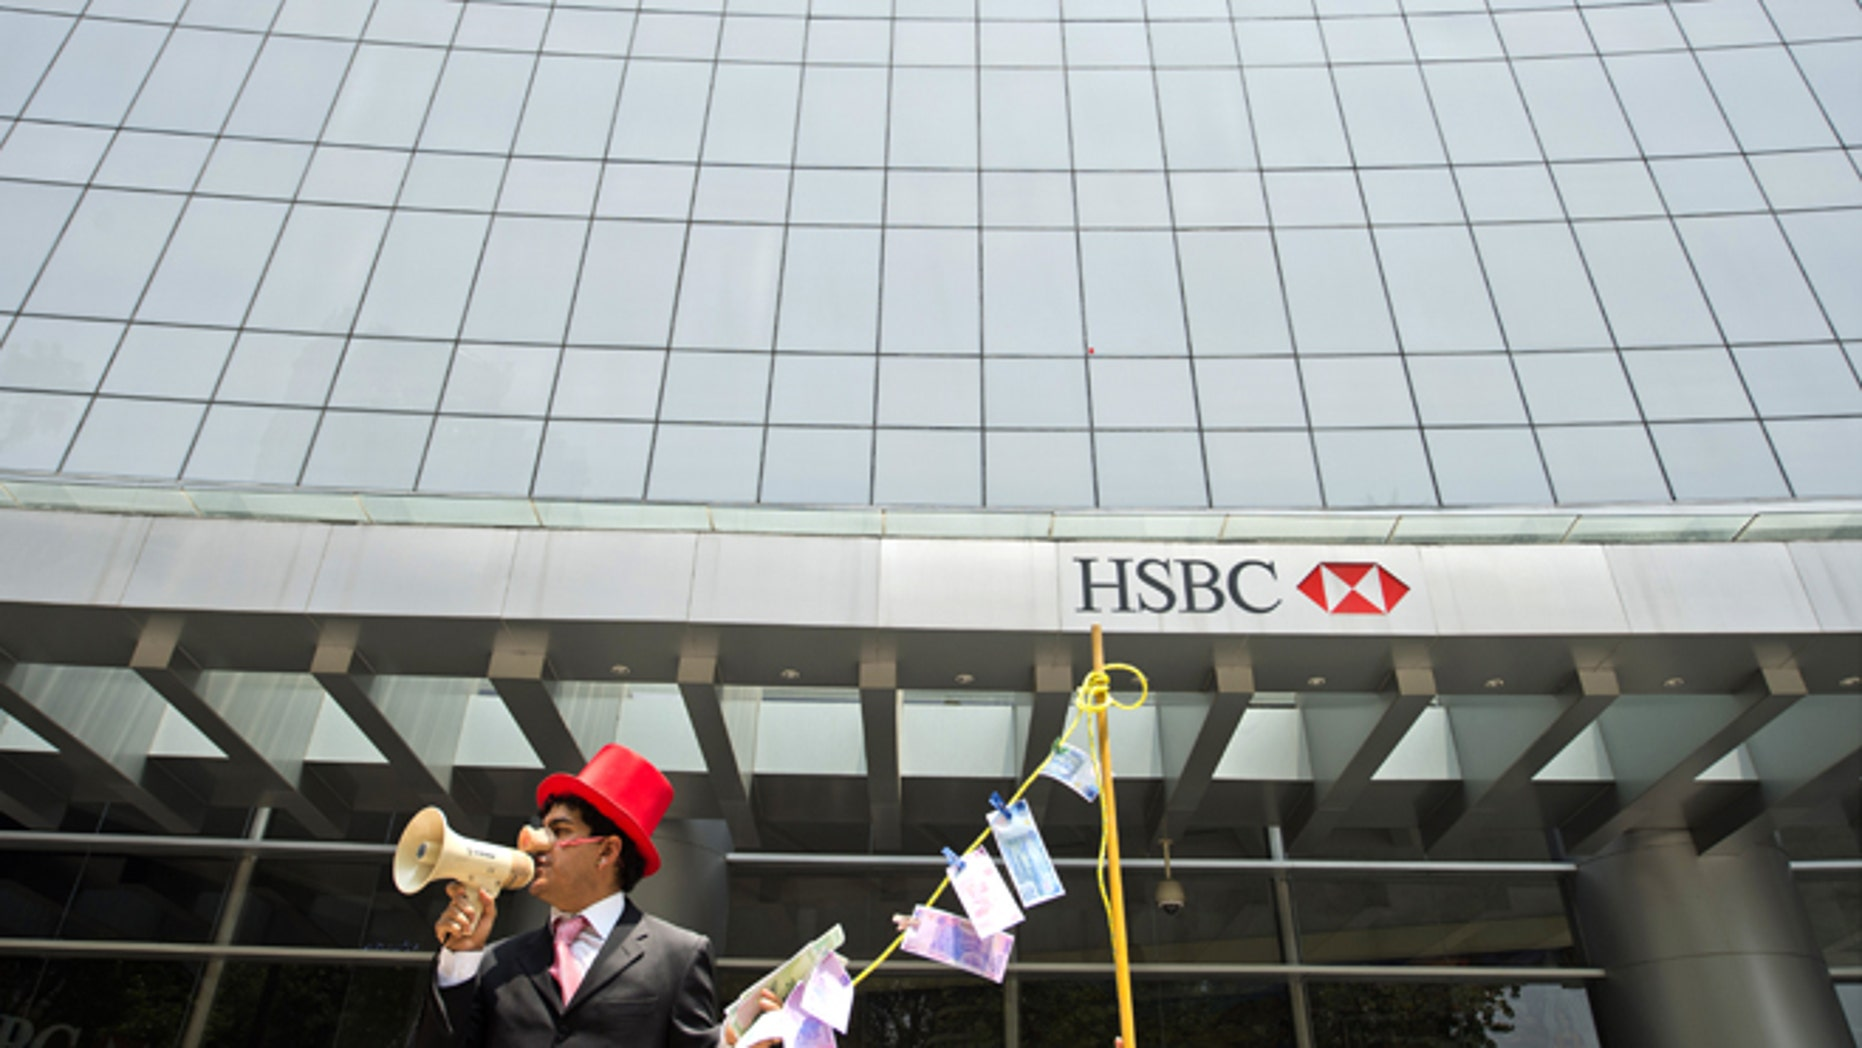 """A man weraing a pig nose and holding fake notes shouts slogans during a protest in front of a HSBC branch building, in Mexico City on July 30, 2012. HSBC said on July 30 it took a provision of 700 USD million (571 million euros) to cover fines for failing to apply anti-money laundering rules and warned the overall cost could be """"significantly higher."""" AFP PHOTO/Alfredo ESTRELLA        (Photo credit should read ALFREDO ESTRELLA/AFP/GettyImages)"""